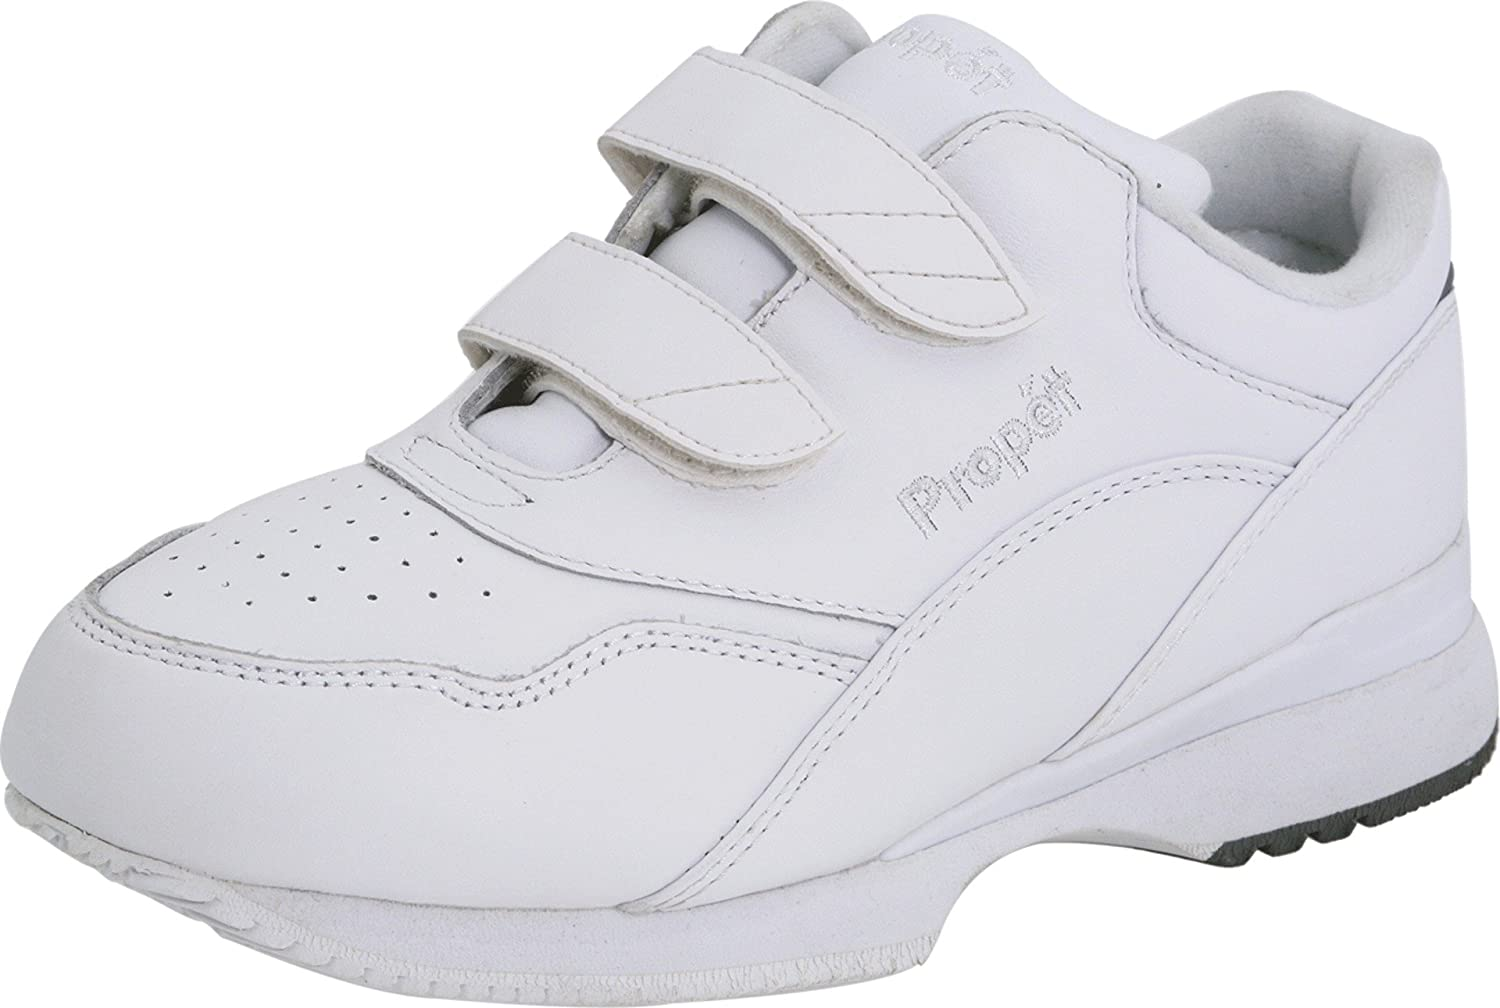 Propet Women's Tour Walker Strap Sneaker B000BO8980 6 X US|White